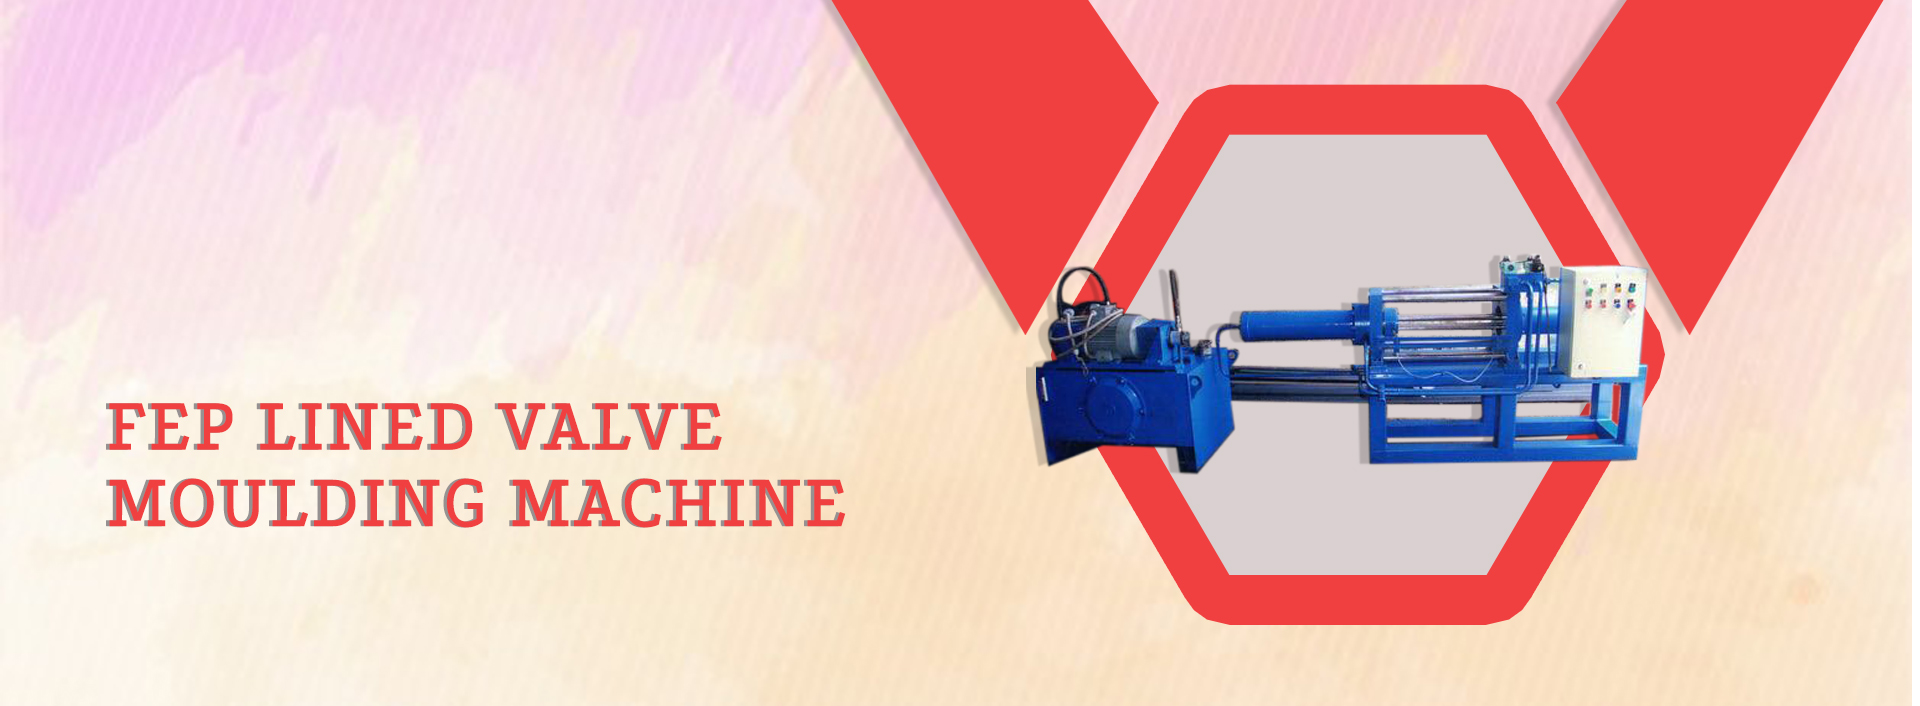 Shakti Industries is a renowned manufacturer and supplier of Injection Transfer Moulding Machine India